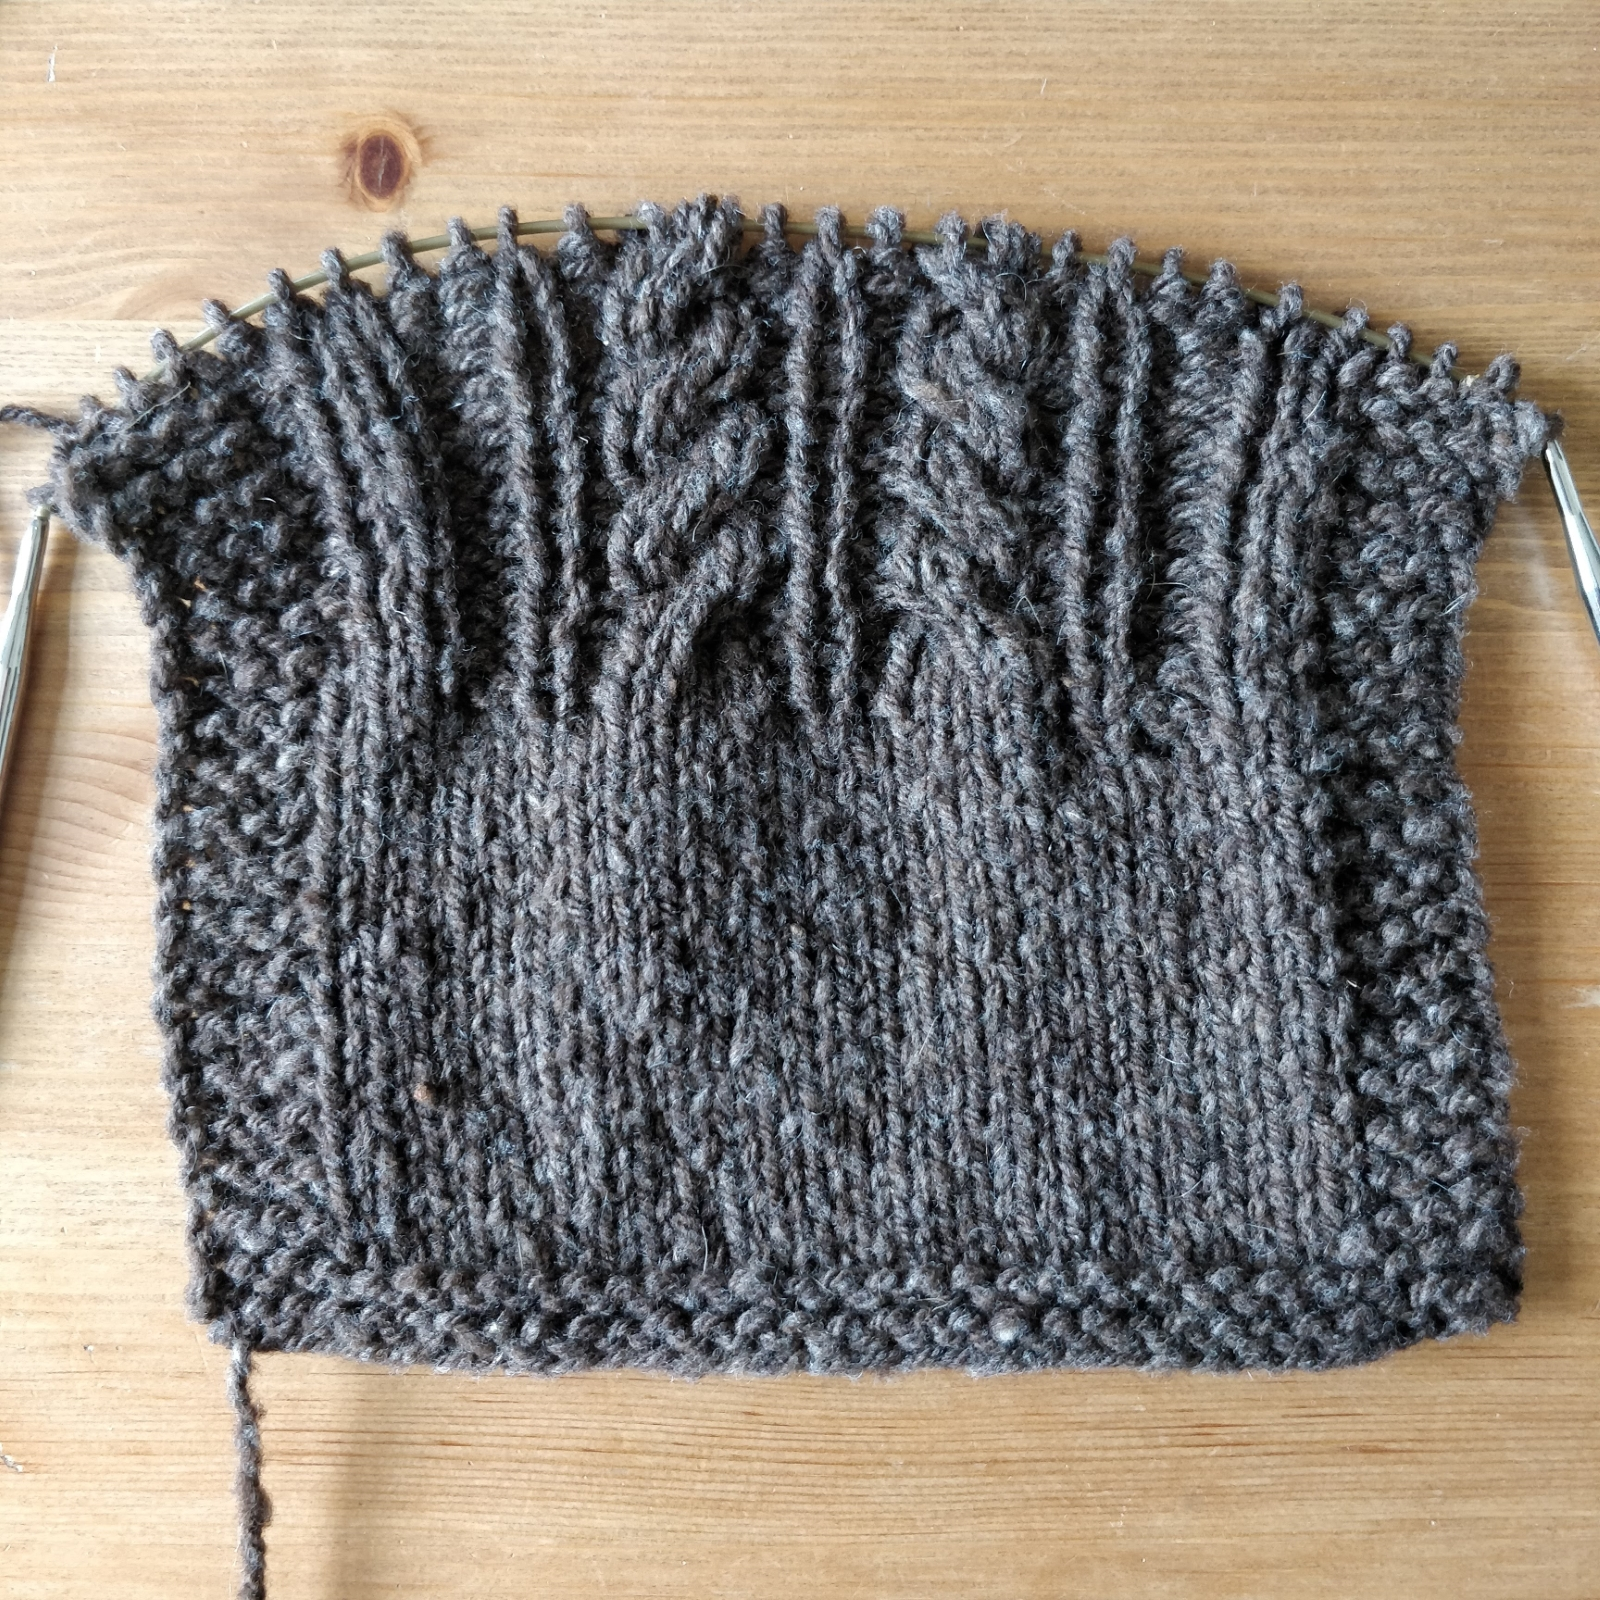 A swatch of brown knitting with plain stockinette at the bottom and cables plus ribbing at the top.